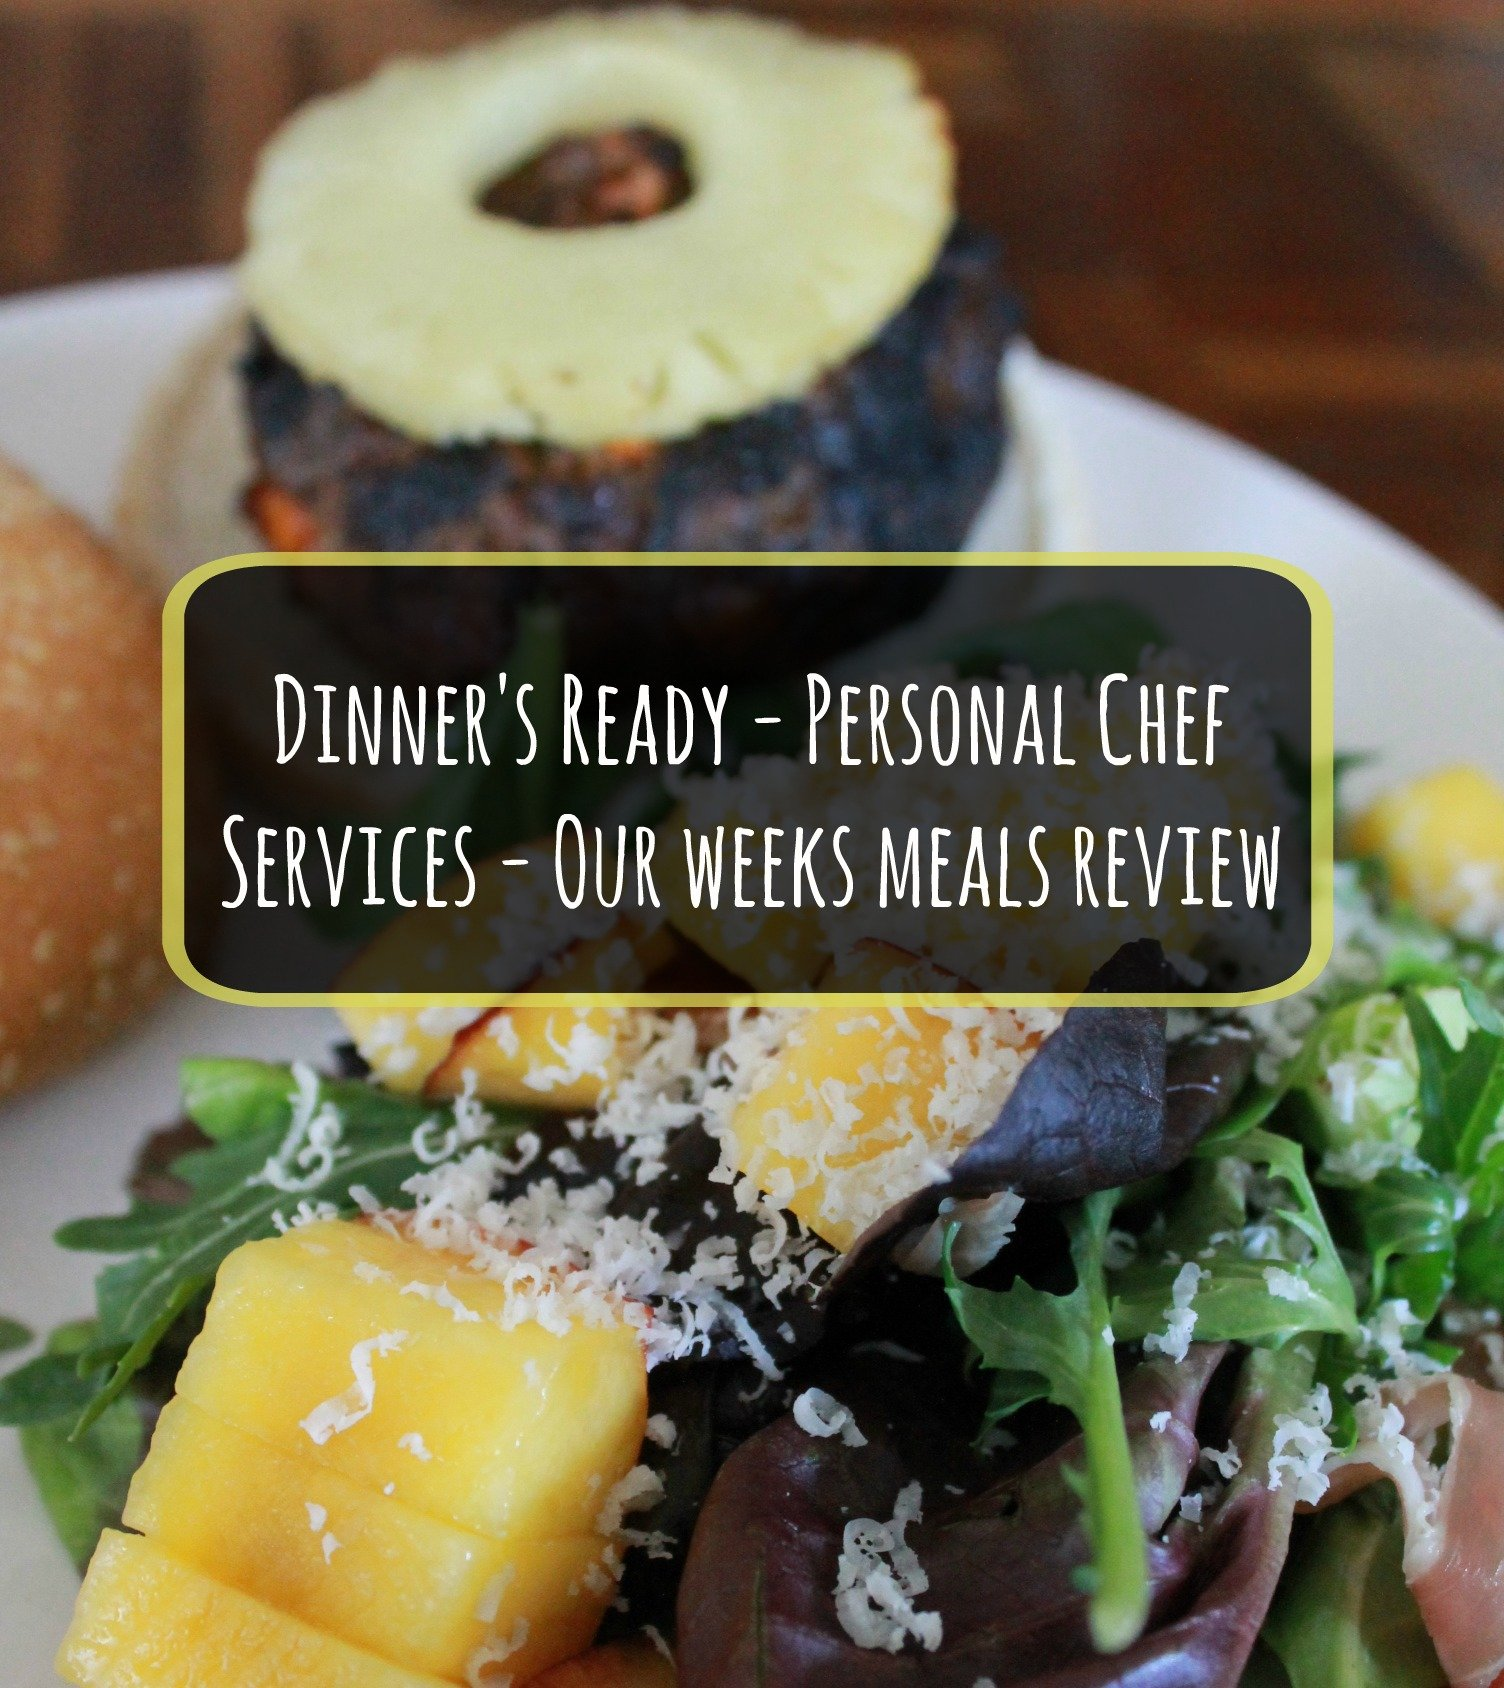 Dinner's Ready Personal Chef Services